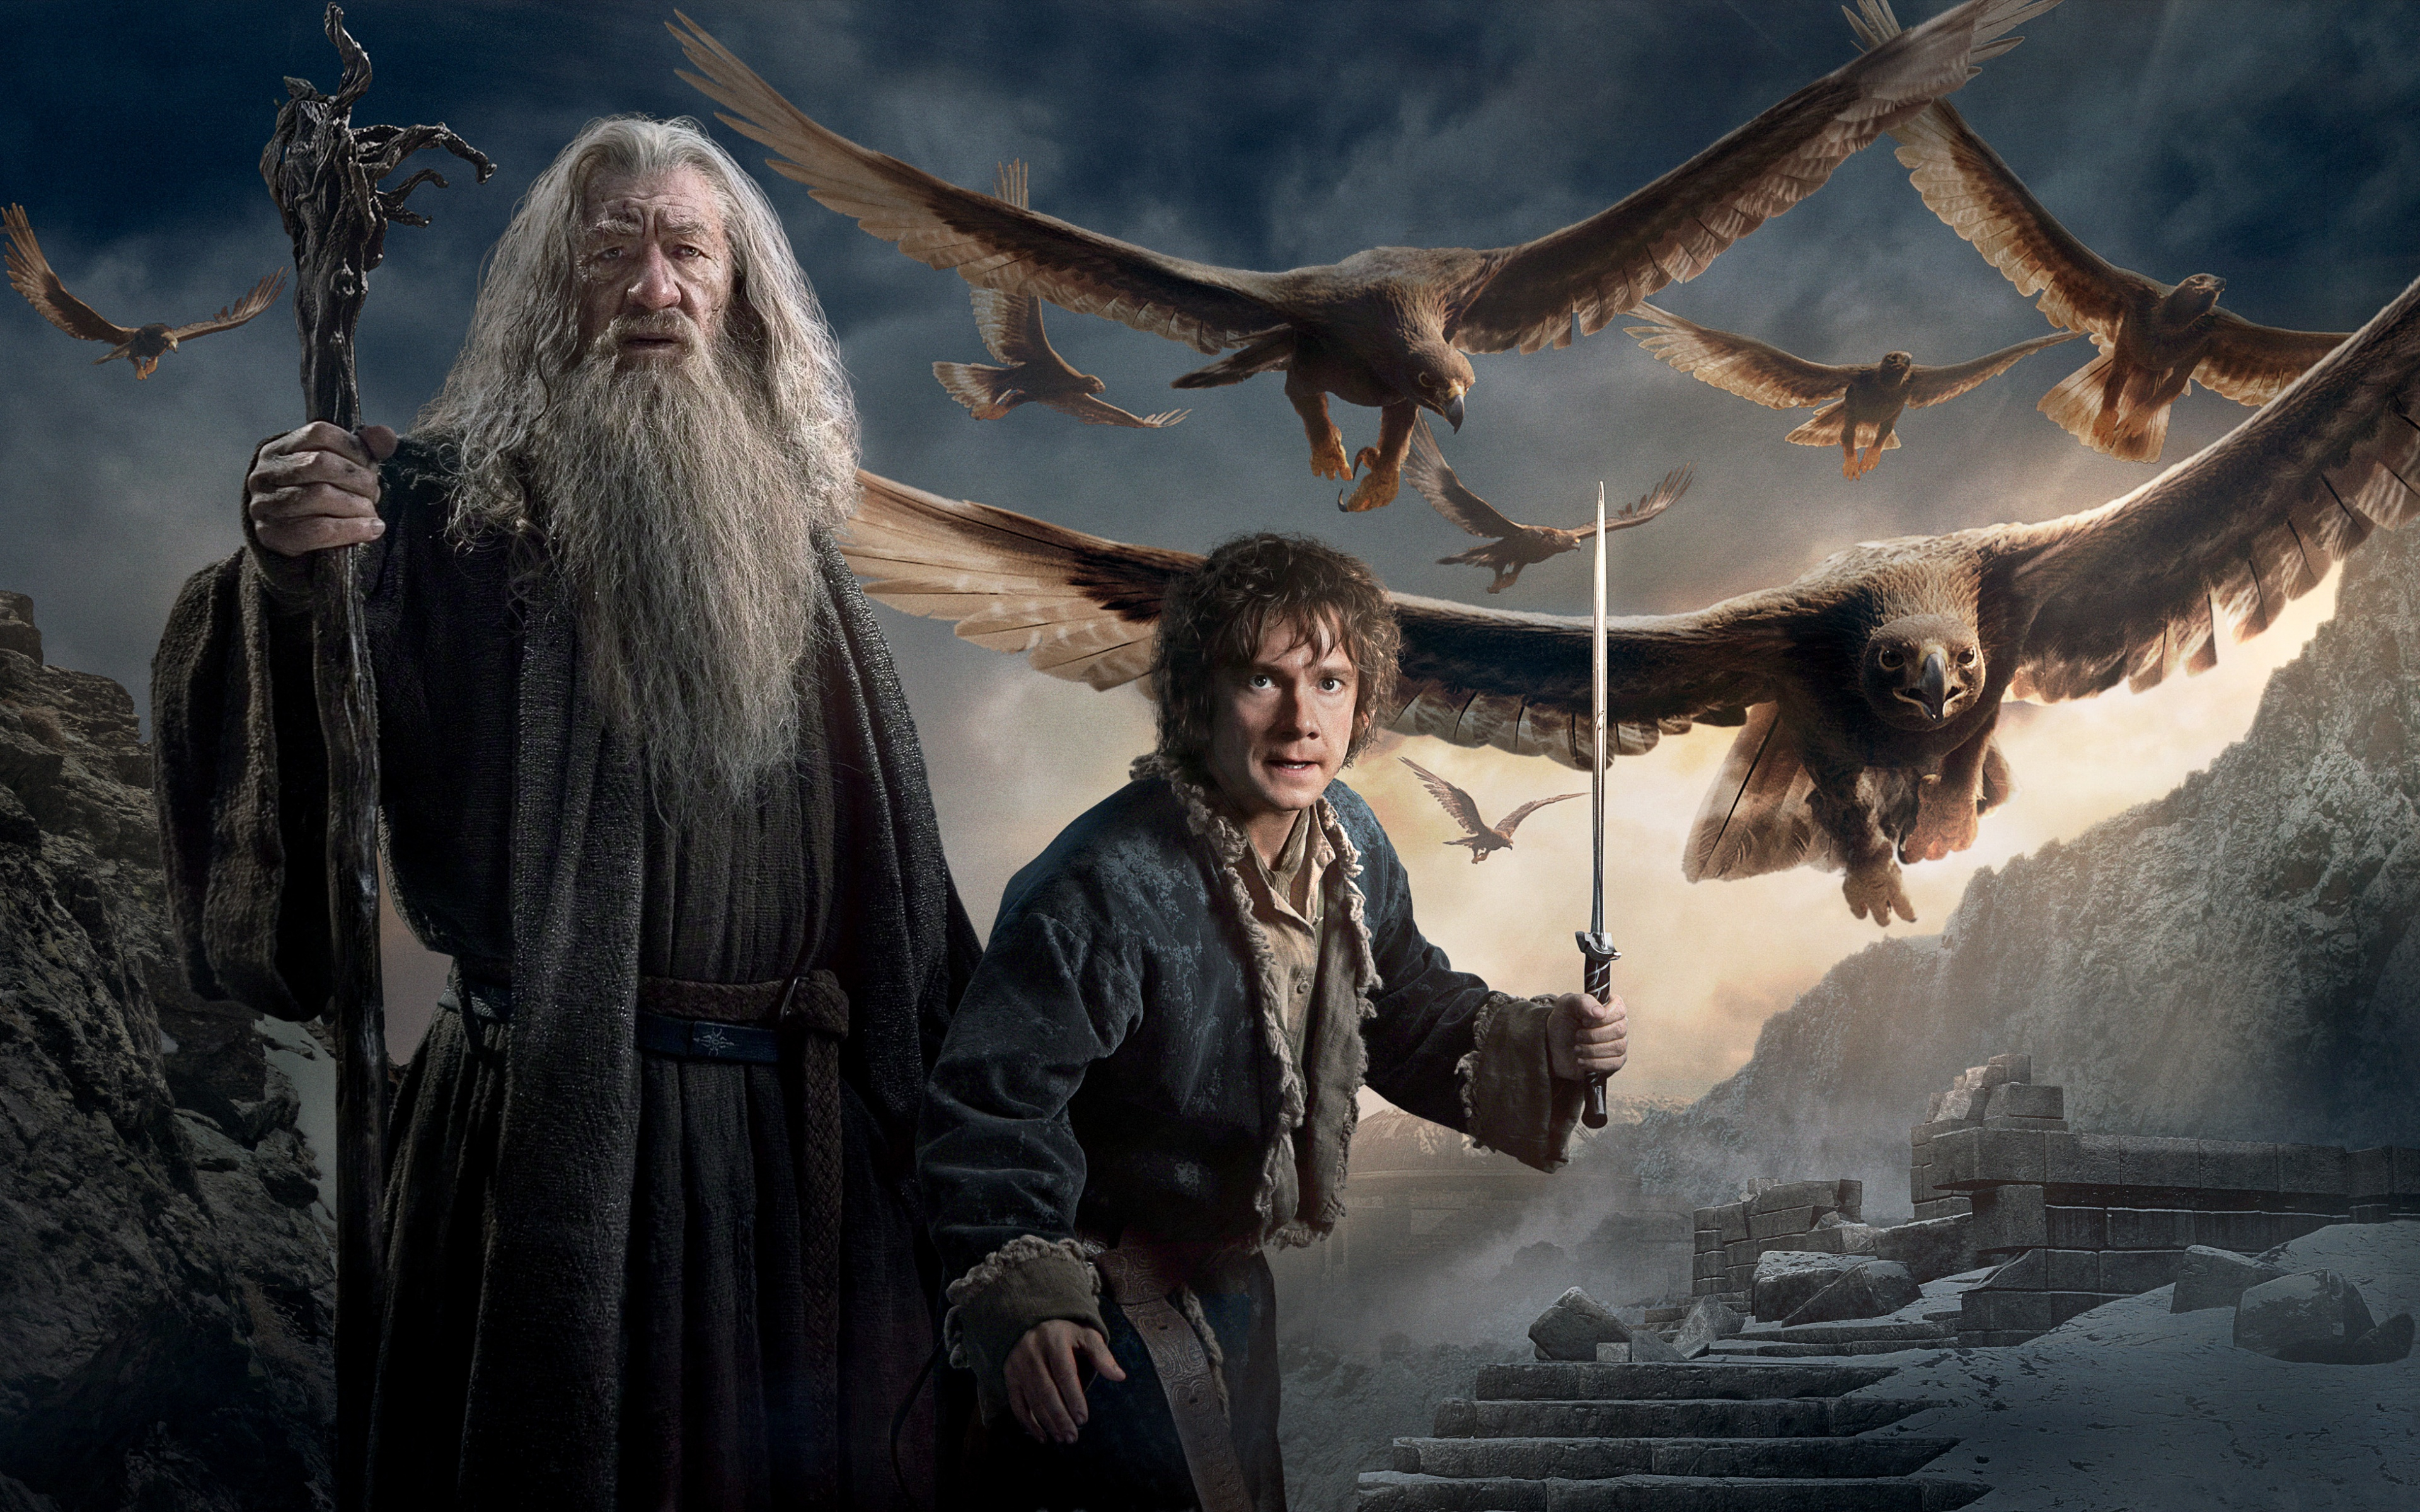 The Hobbit: The Battle of the Five Armies 4k Ultra HD